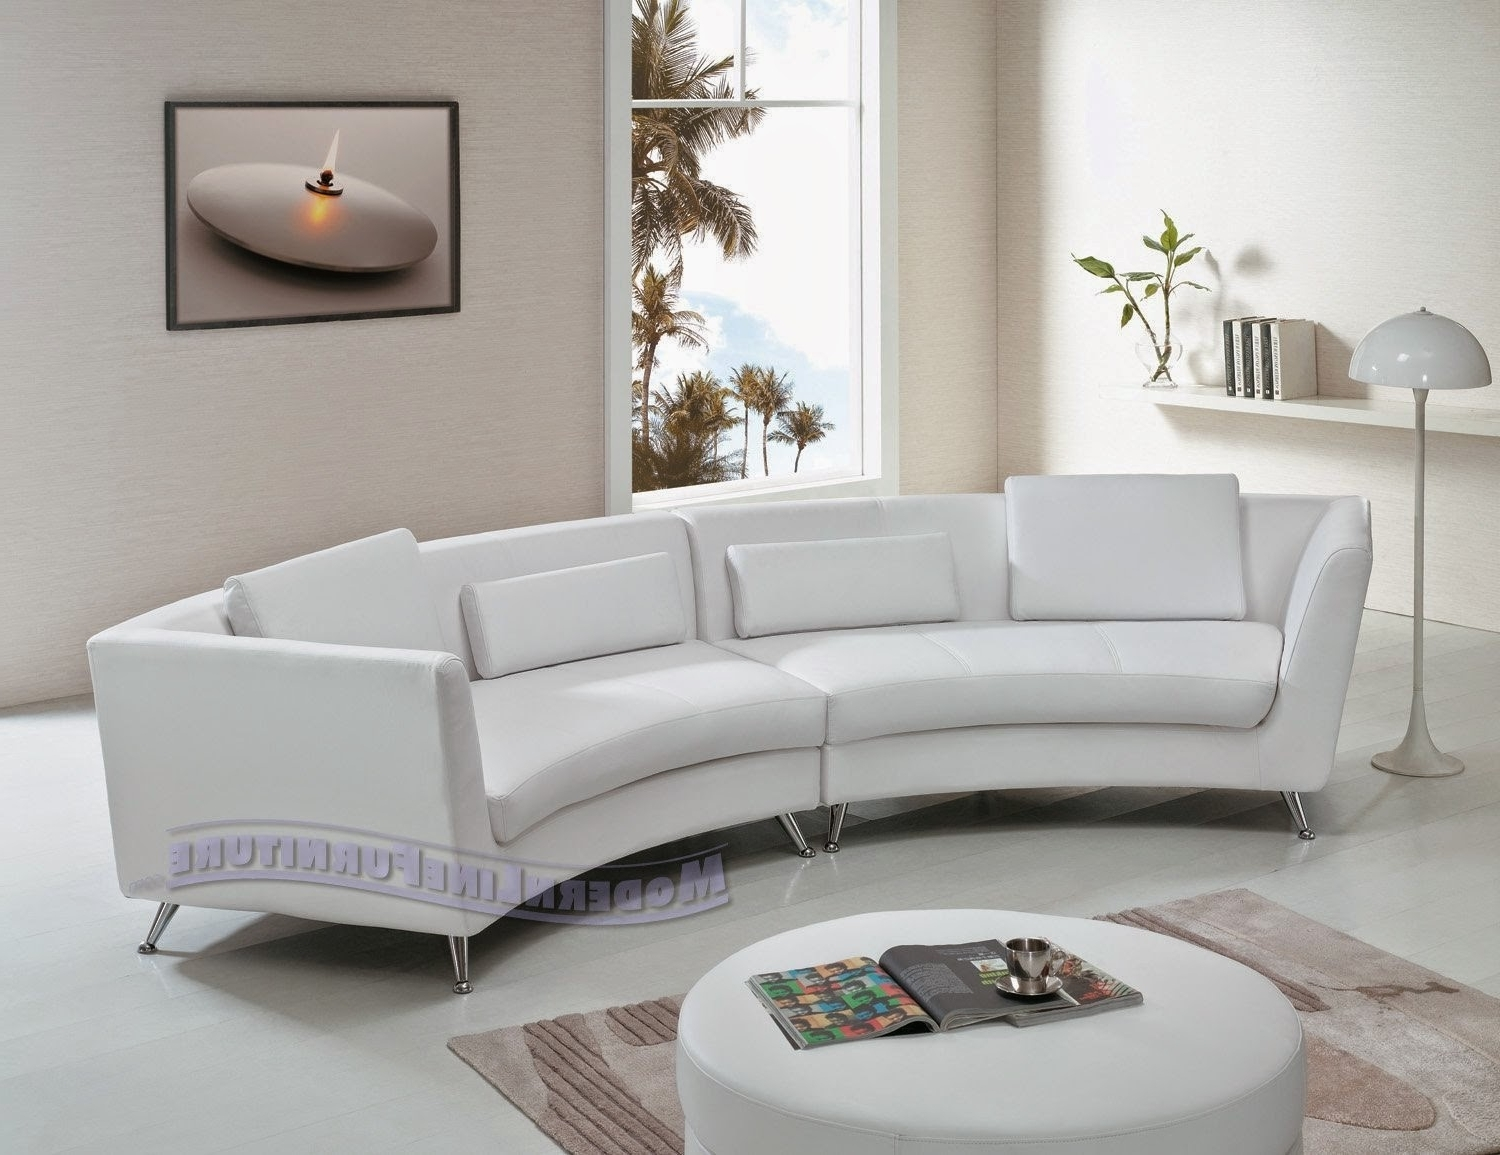 Sofa Curved: Curved Sofa For Bay Window With Preferred The Bay Sectional Sofas (View 13 of 20)